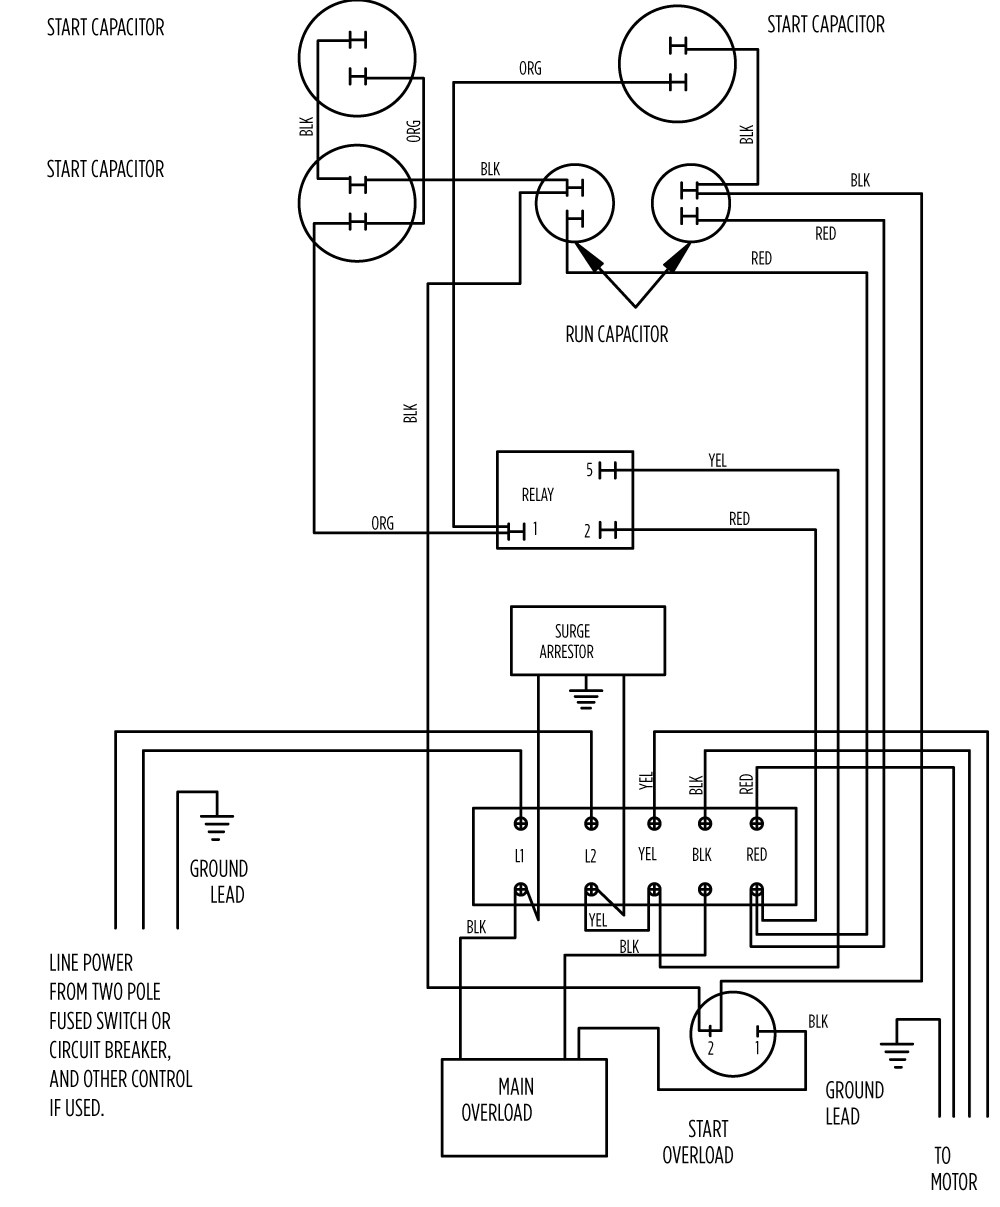 10 hp standard 282 202 9210 or 282 202 9230_aim gallery?format=jpg&quality=80 aim manual page 57 single phase motors and controls motor baldor motors wiring diagram at gsmx.co